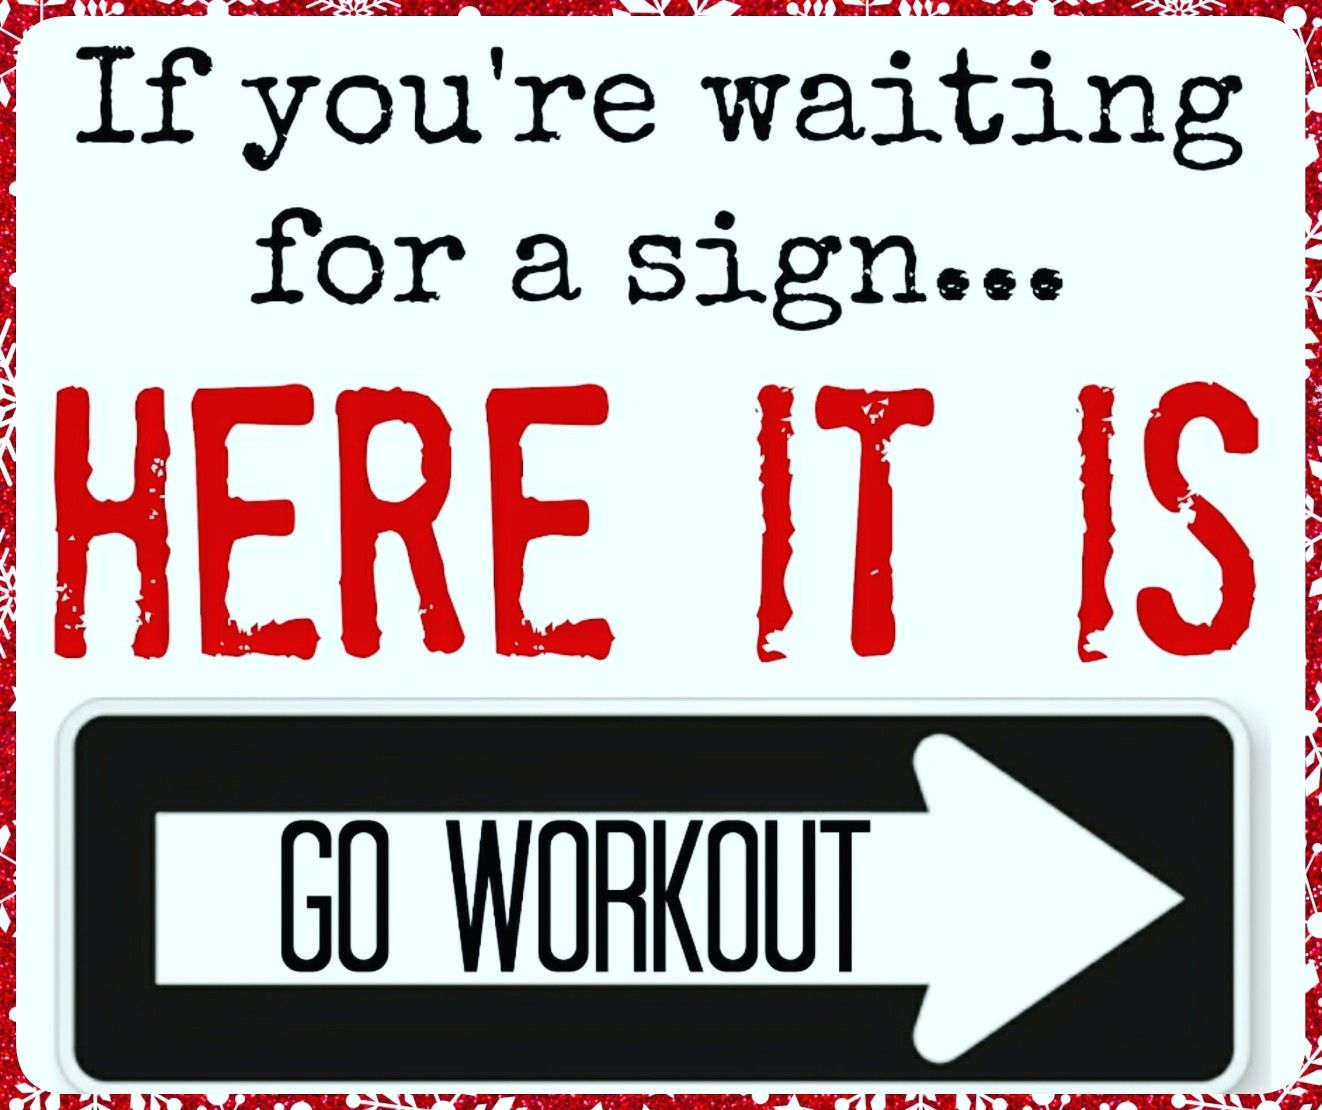 Happy Workout Wednesday What Workout Will You So Today Happyworkout Happyw Fitness Motivation Inspiration Fitness Motivation Quotes Gym Fitness Motivation